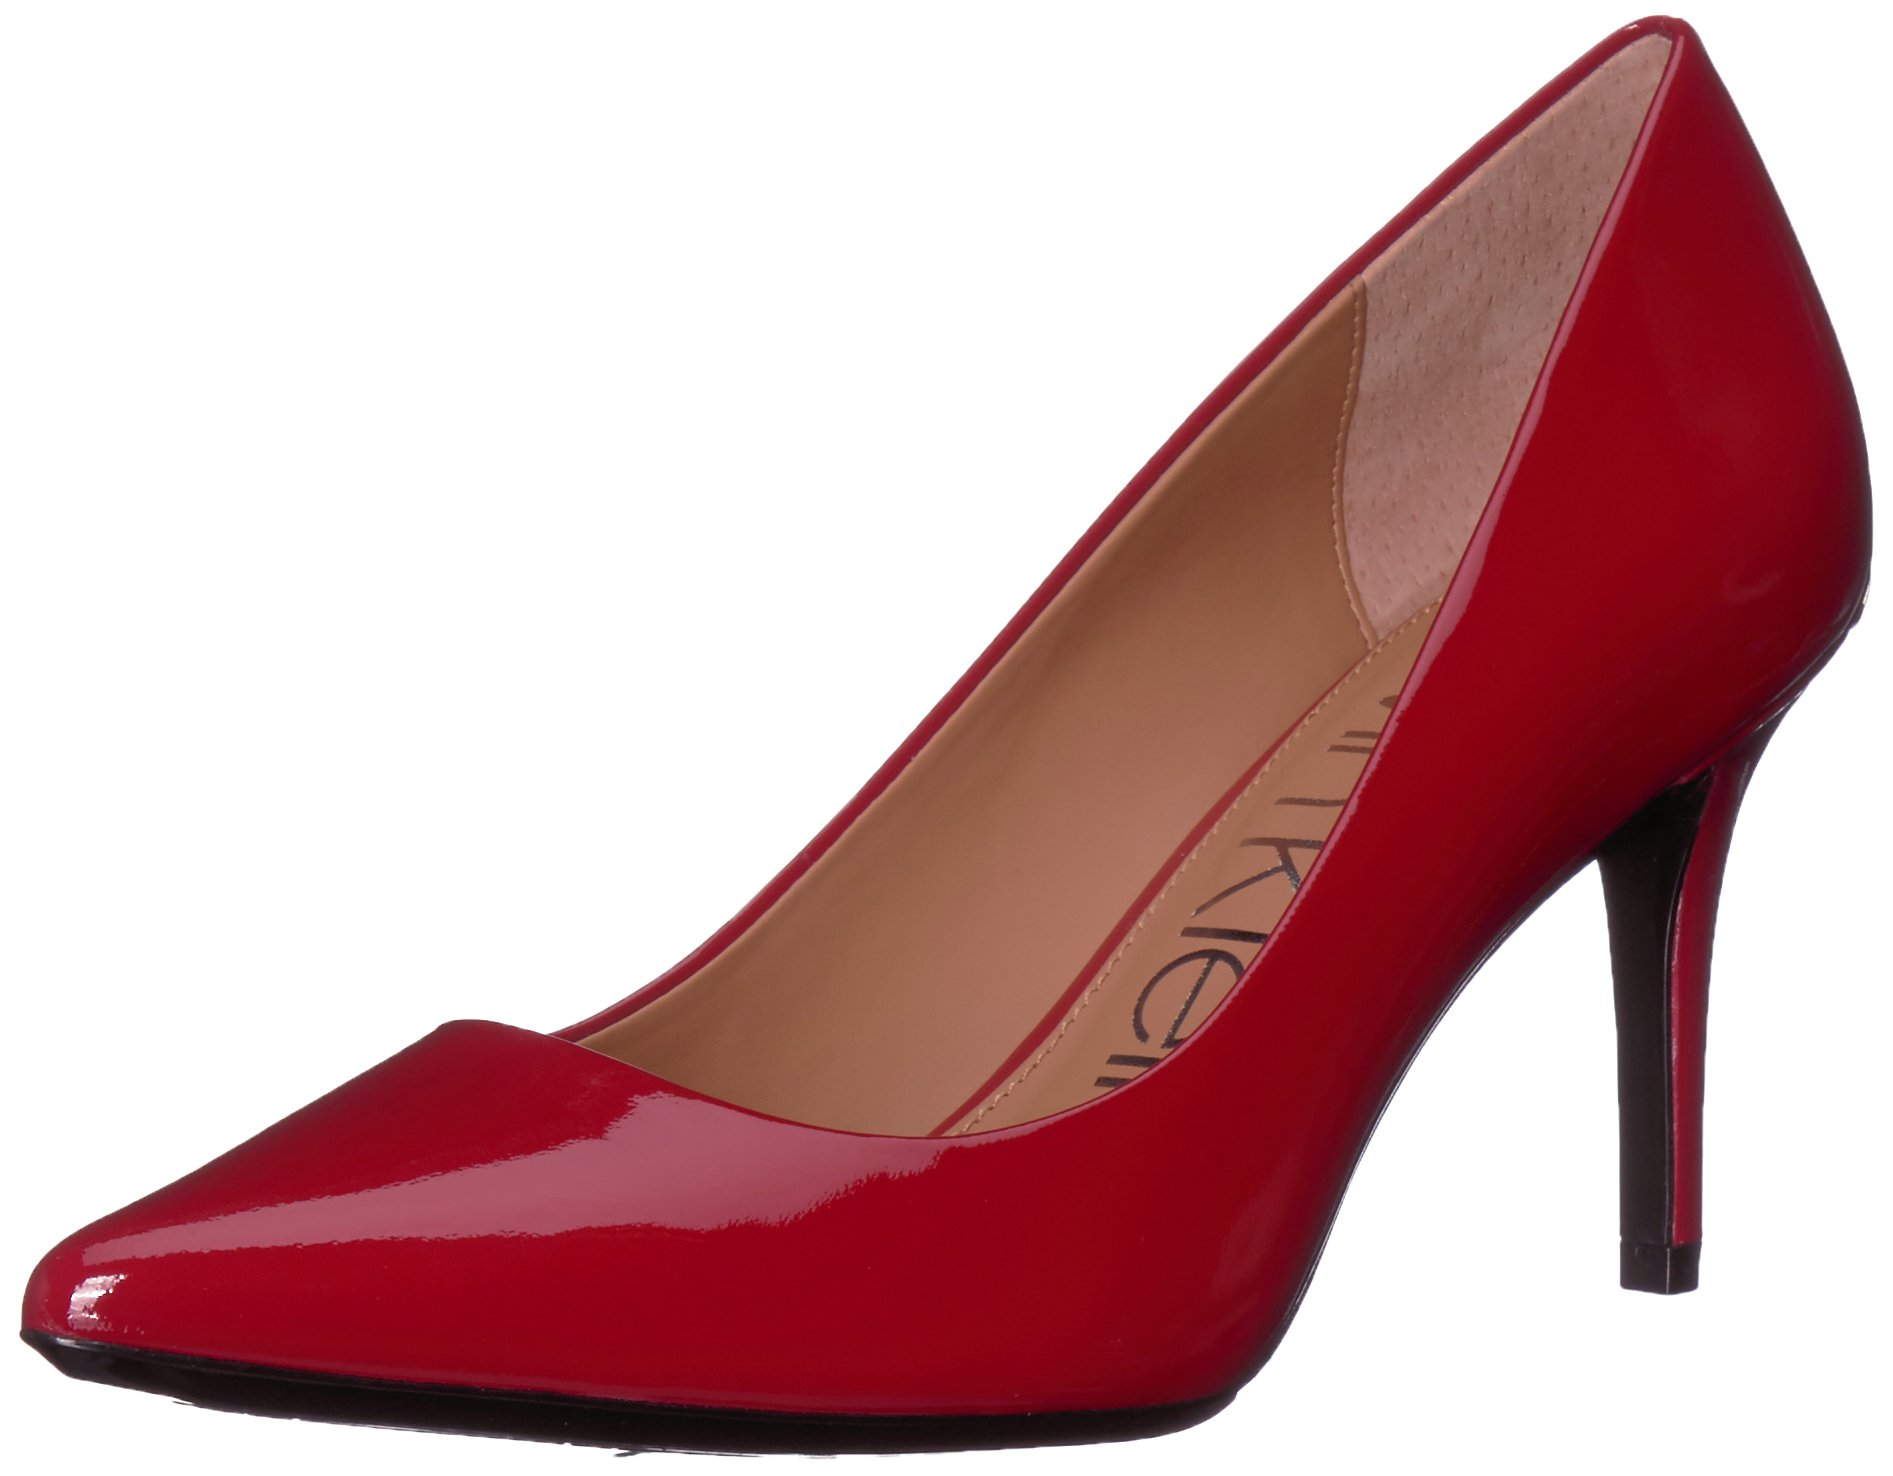 Calvin Klein Women's Gayle Pump, Crimson red, 9.5 Medium US